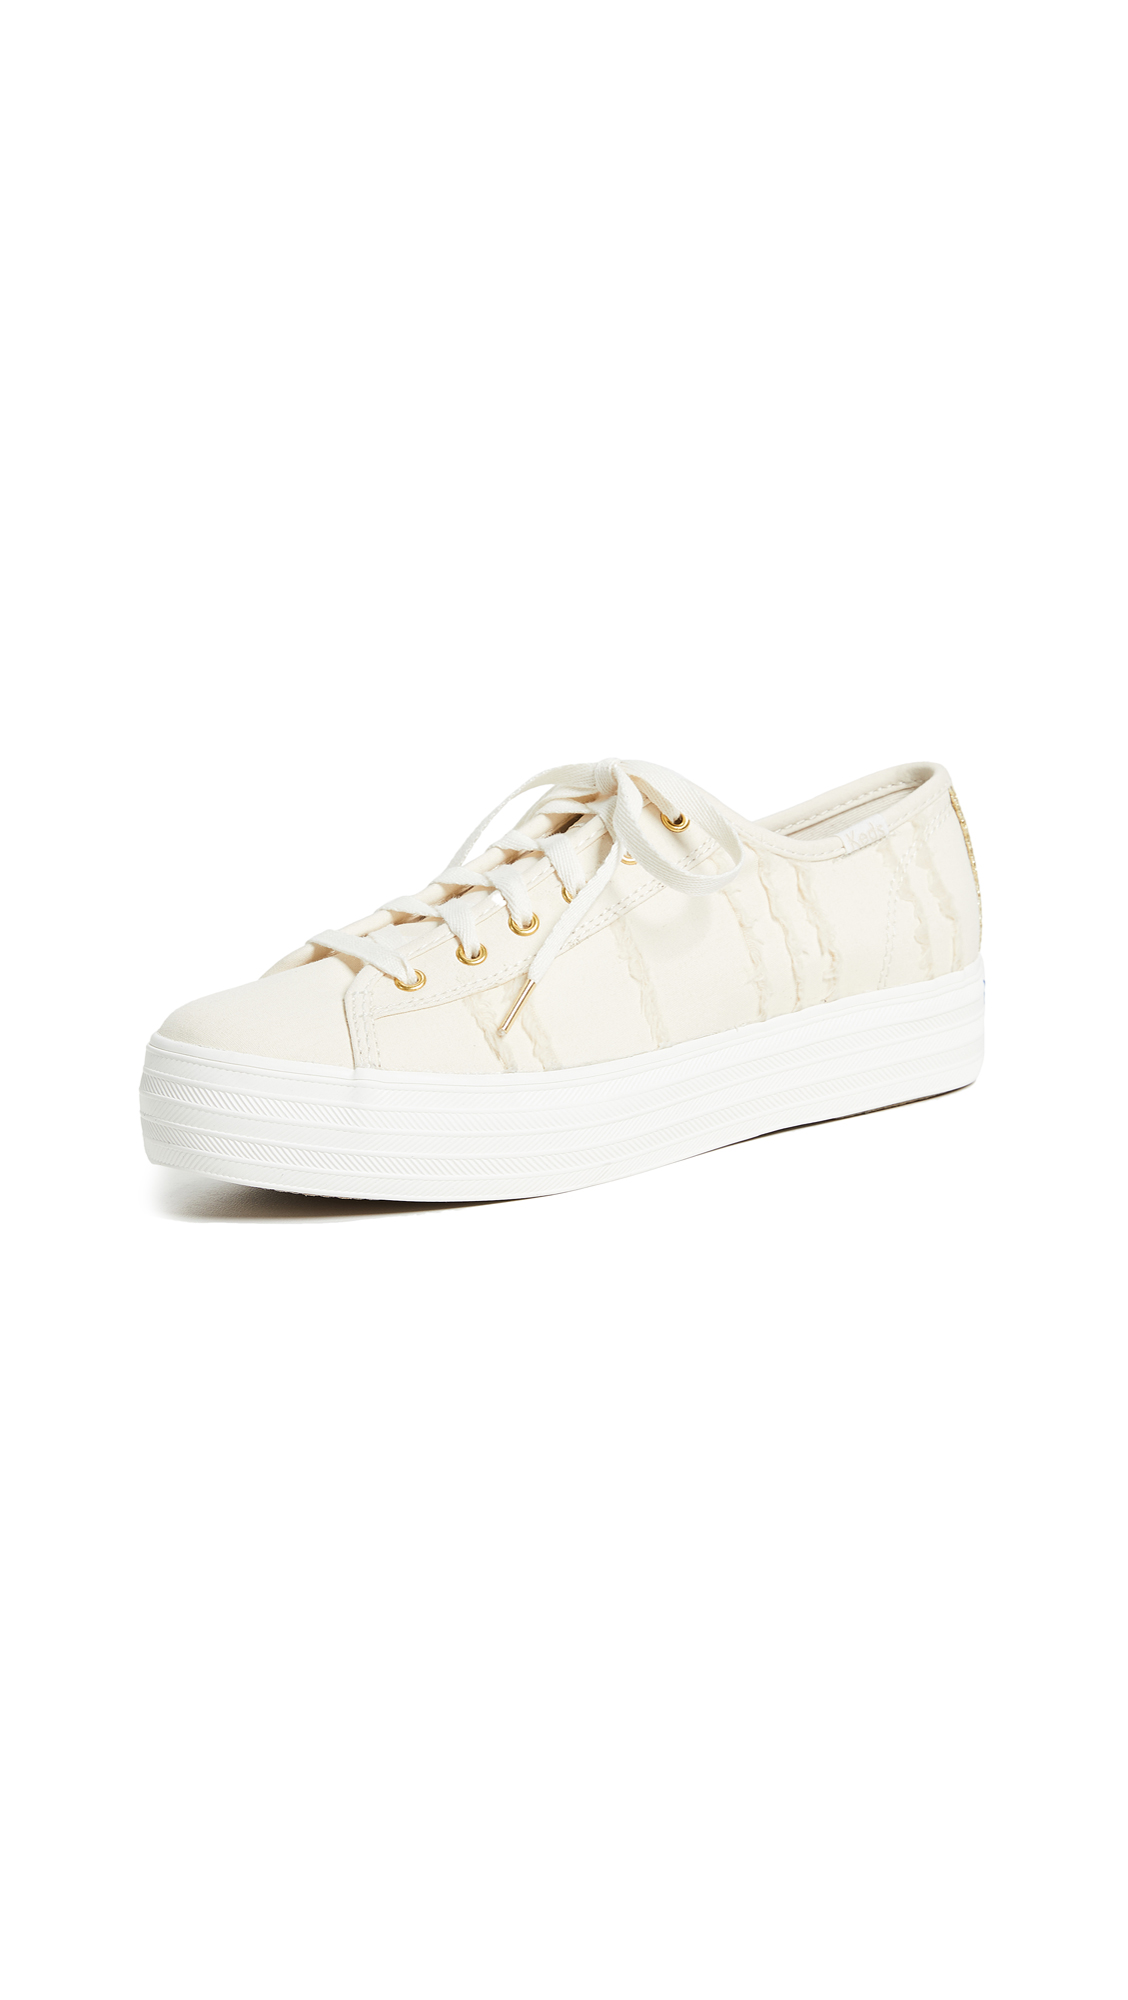 Keds Triple Kick Eyelash Lace Up Sneakers - Cream